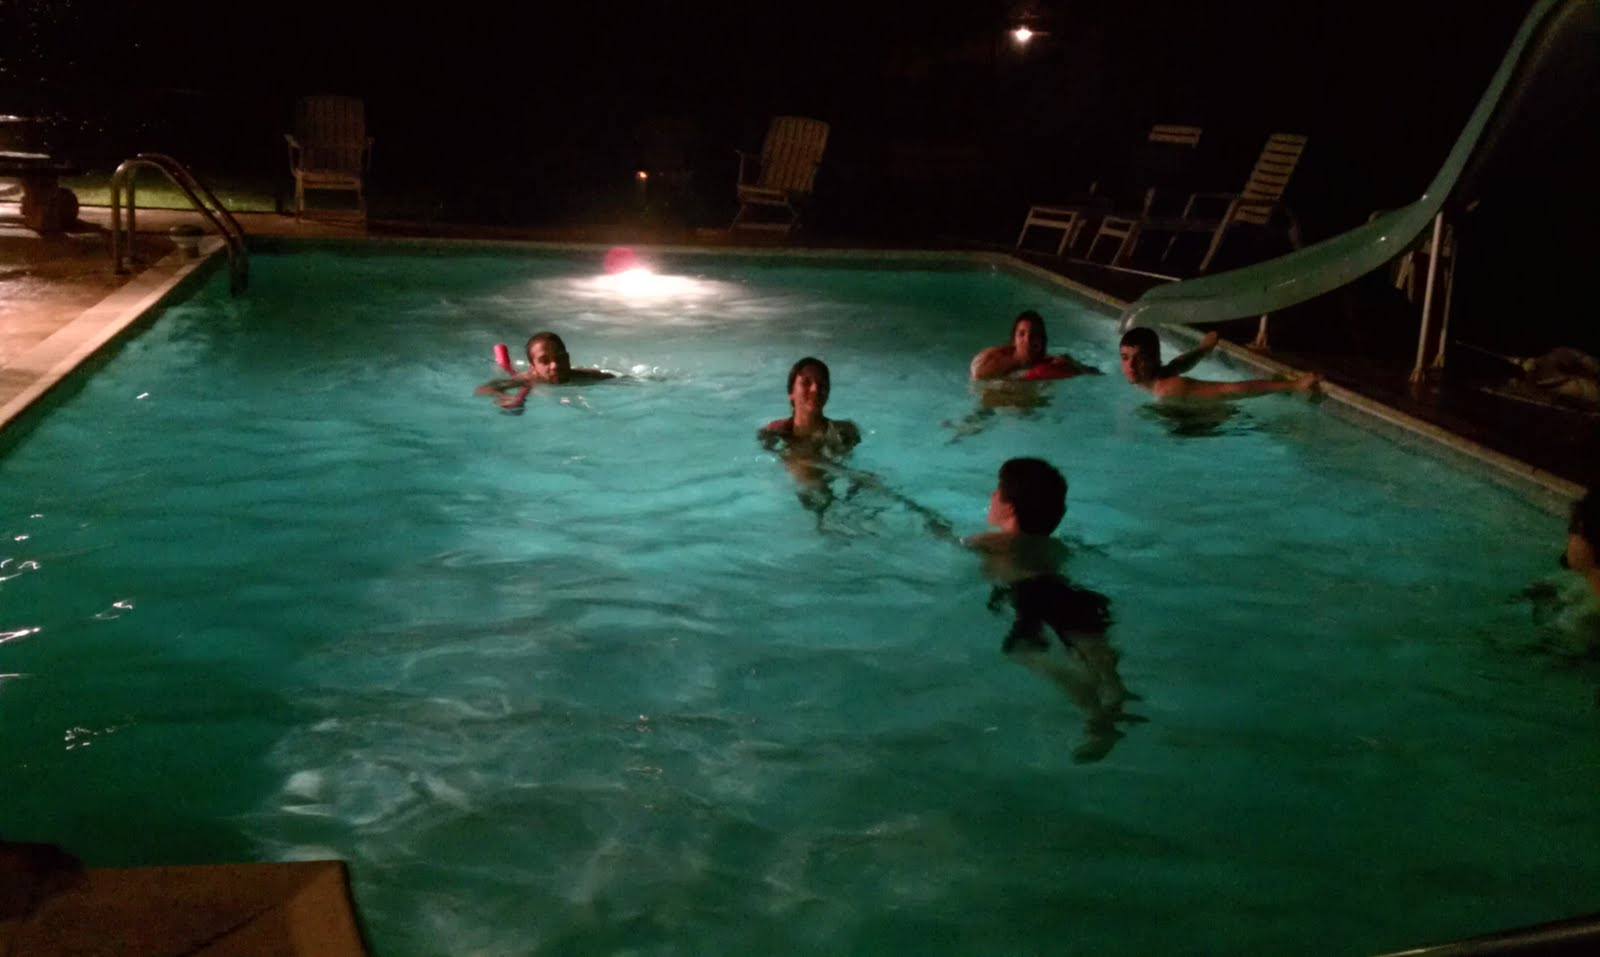 Backyard Pool At Night : Last Saturday night was the cousins gettogether I was hosting at my